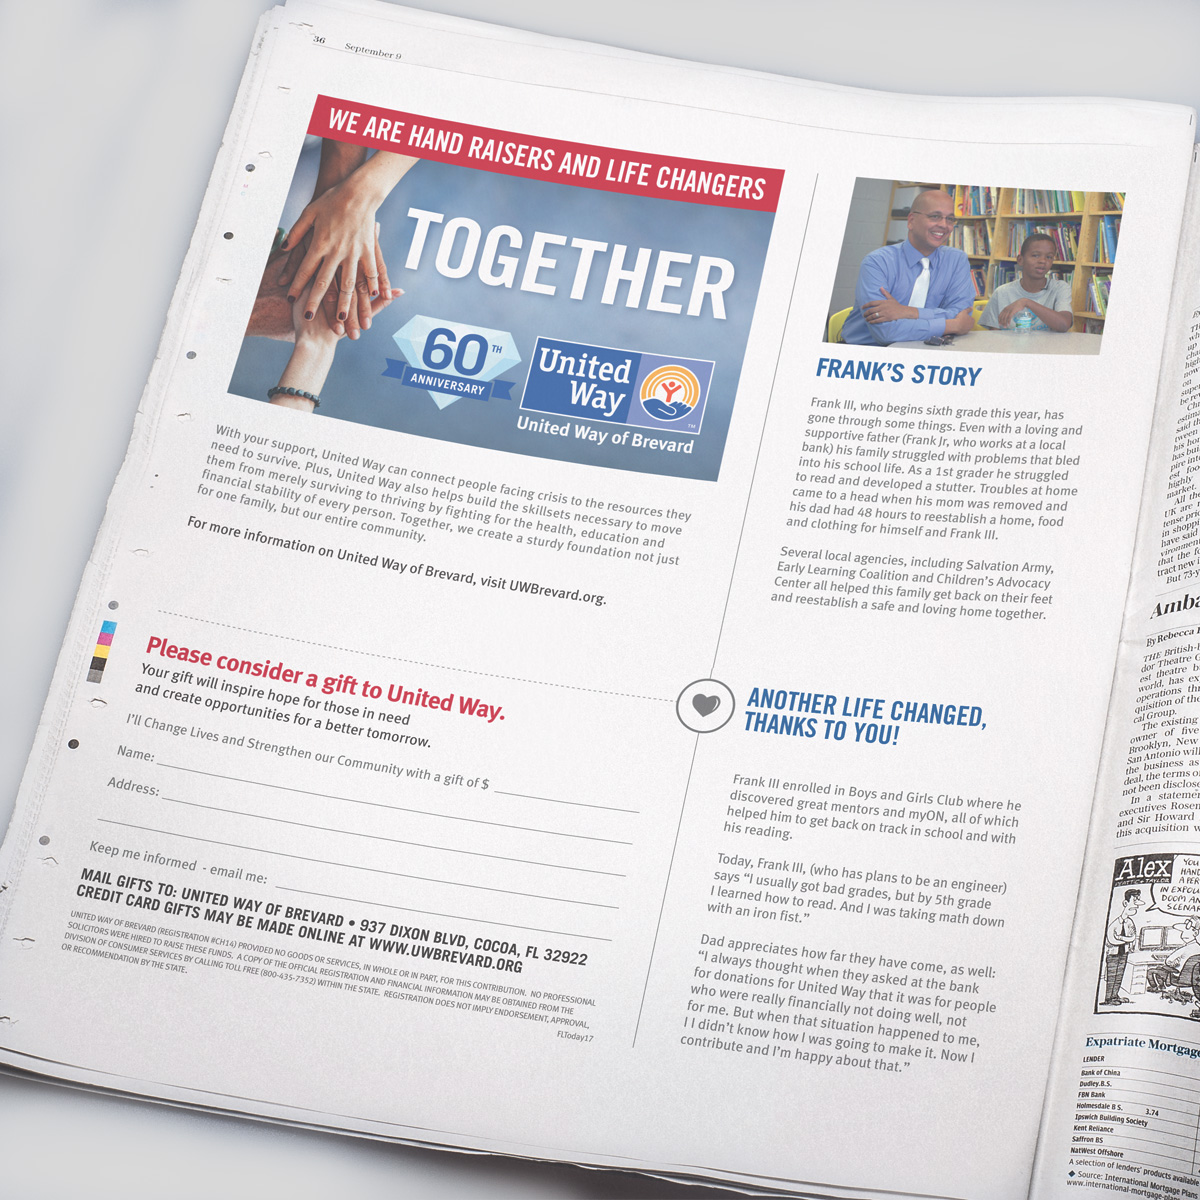 United way together campaign full page ad